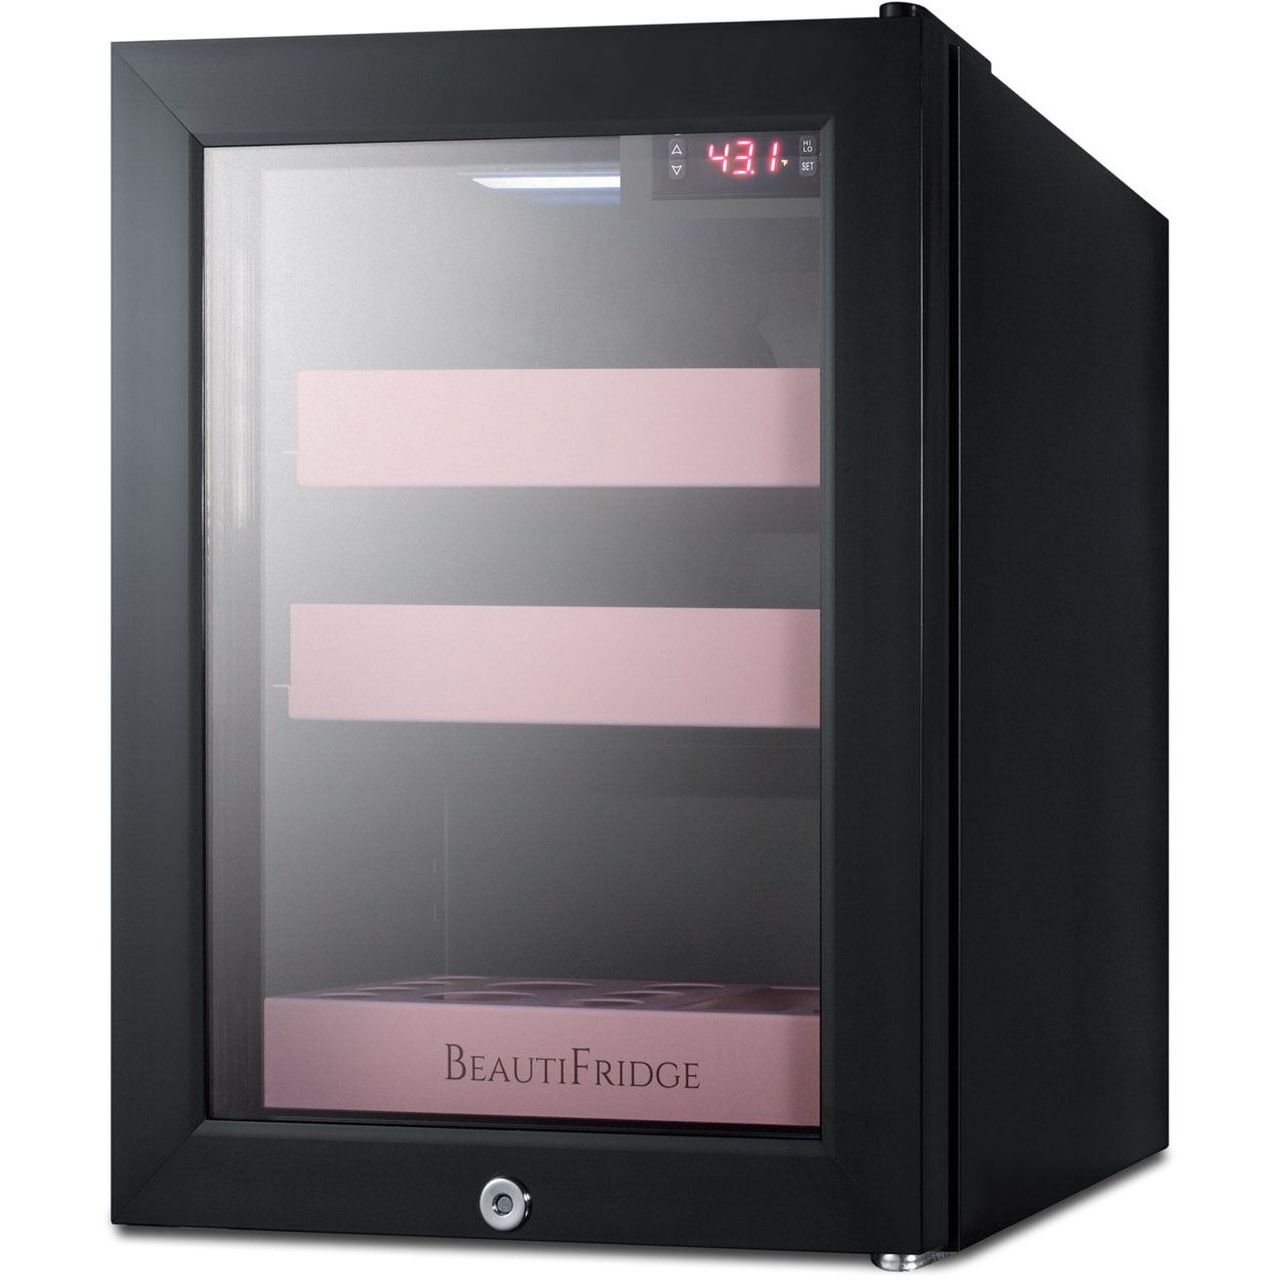 Summit LX114LP BeautiFridge Cosmetics Refrigerator - Glass/Pink